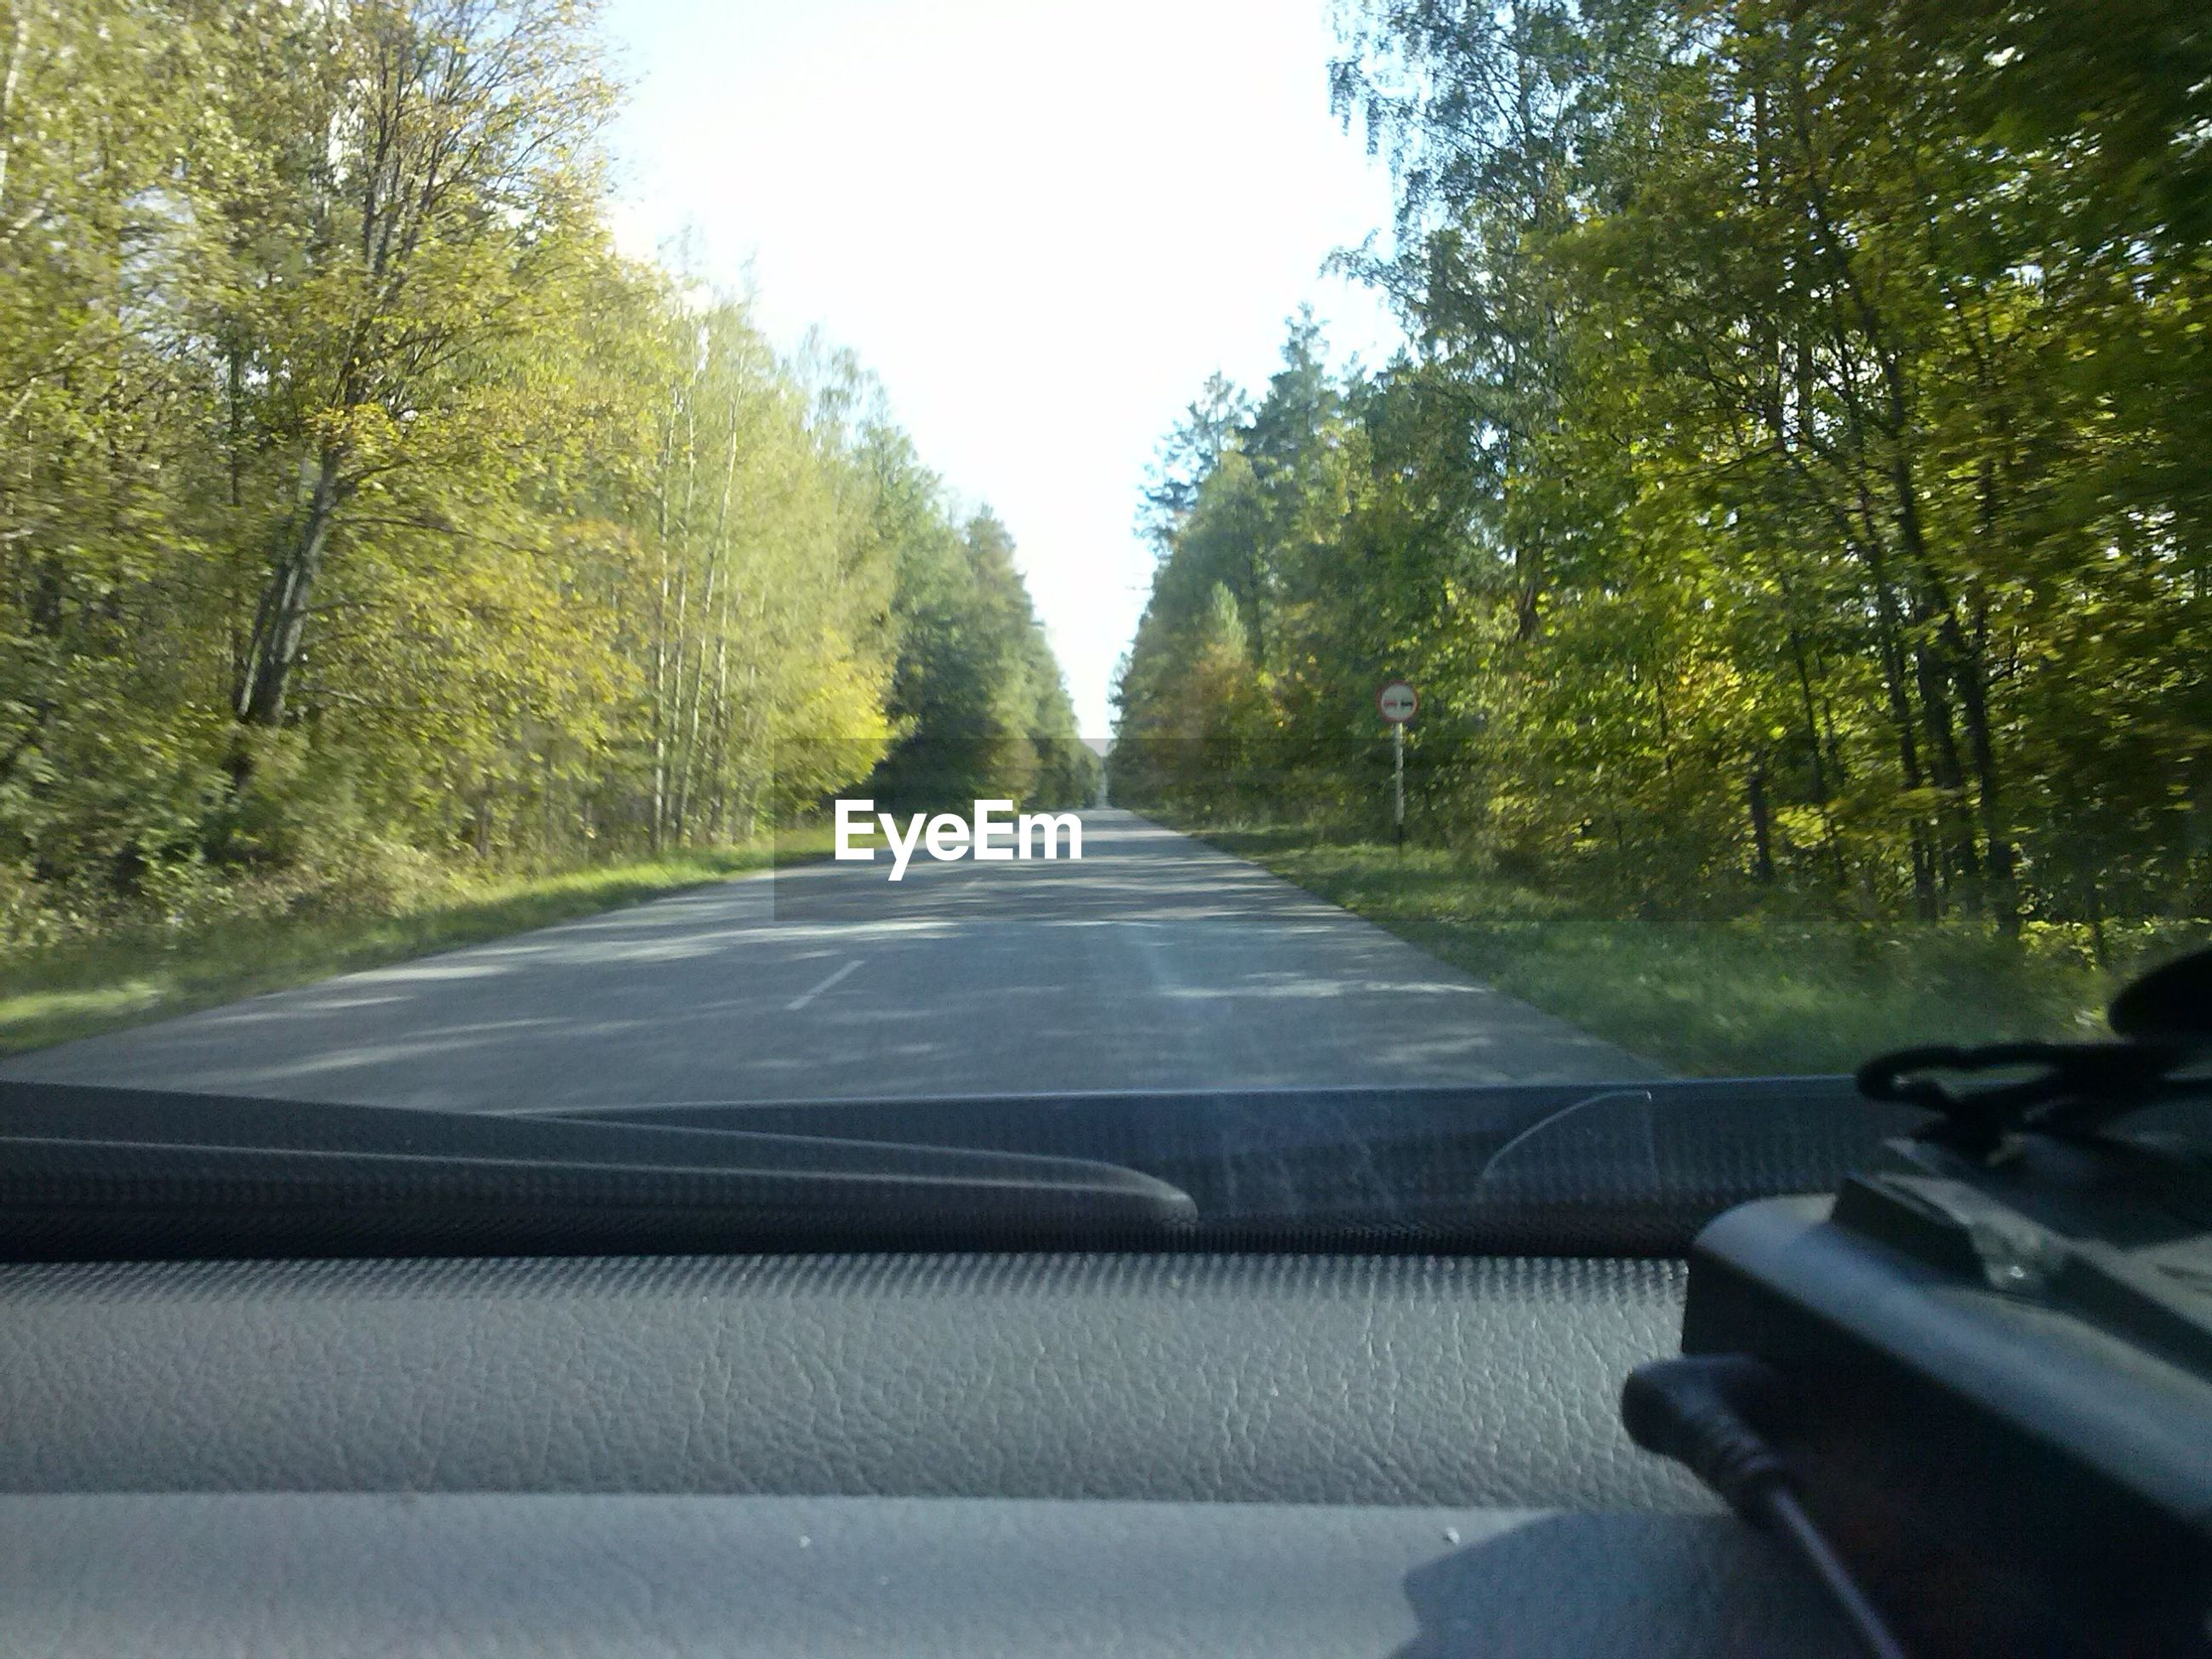 transportation, tree, mode of transport, the way forward, road, windshield, car, land vehicle, vehicle interior, diminishing perspective, road marking, car interior, clear sky, vanishing point, travel, country road, glass - material, transparent, car point of view, sky